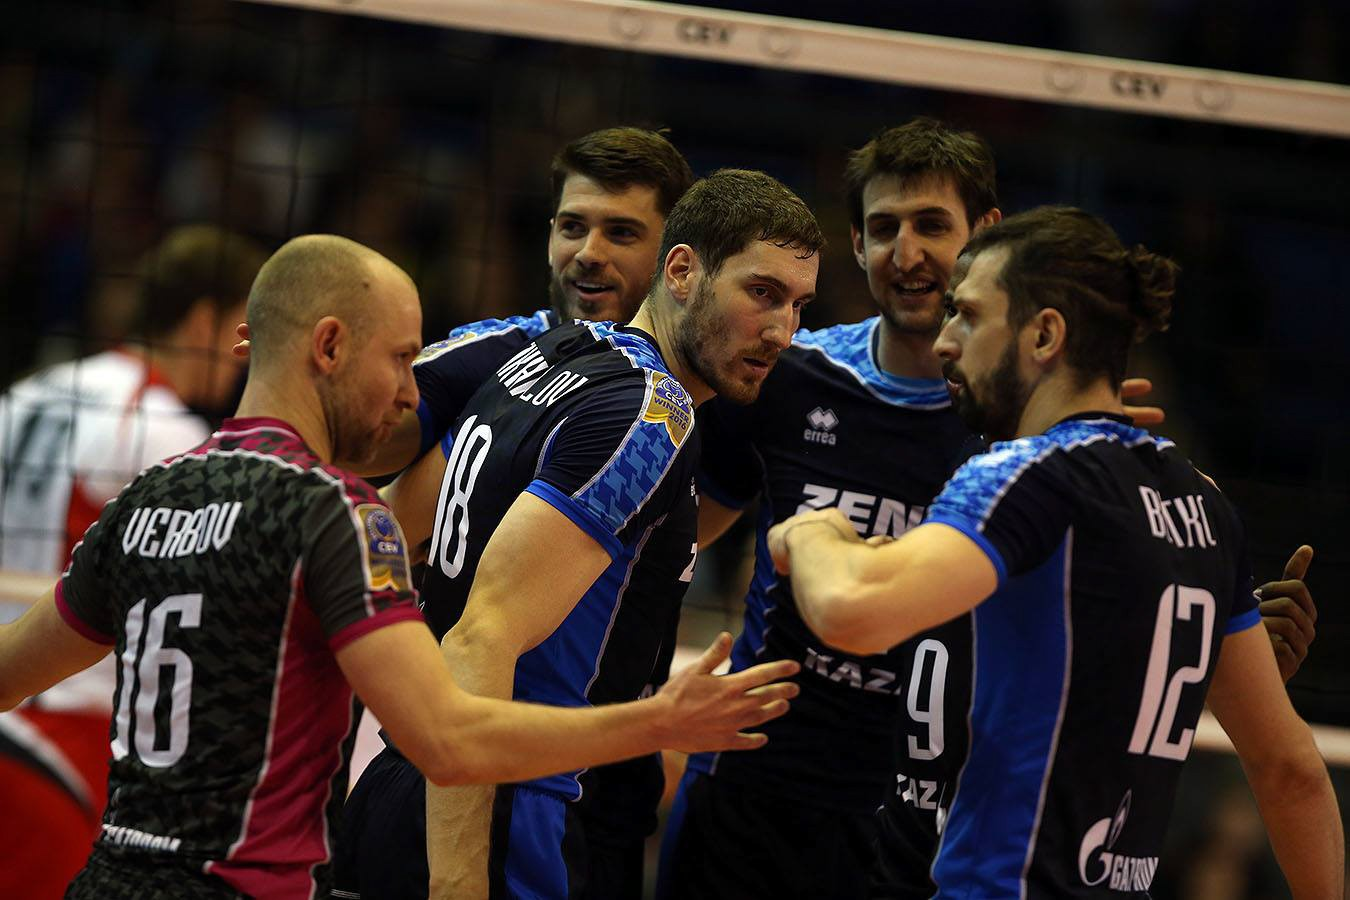 This weekend sees the Final Four of the Volleyball Champions League - Men: Zenit Kazan are going for a historic triple!